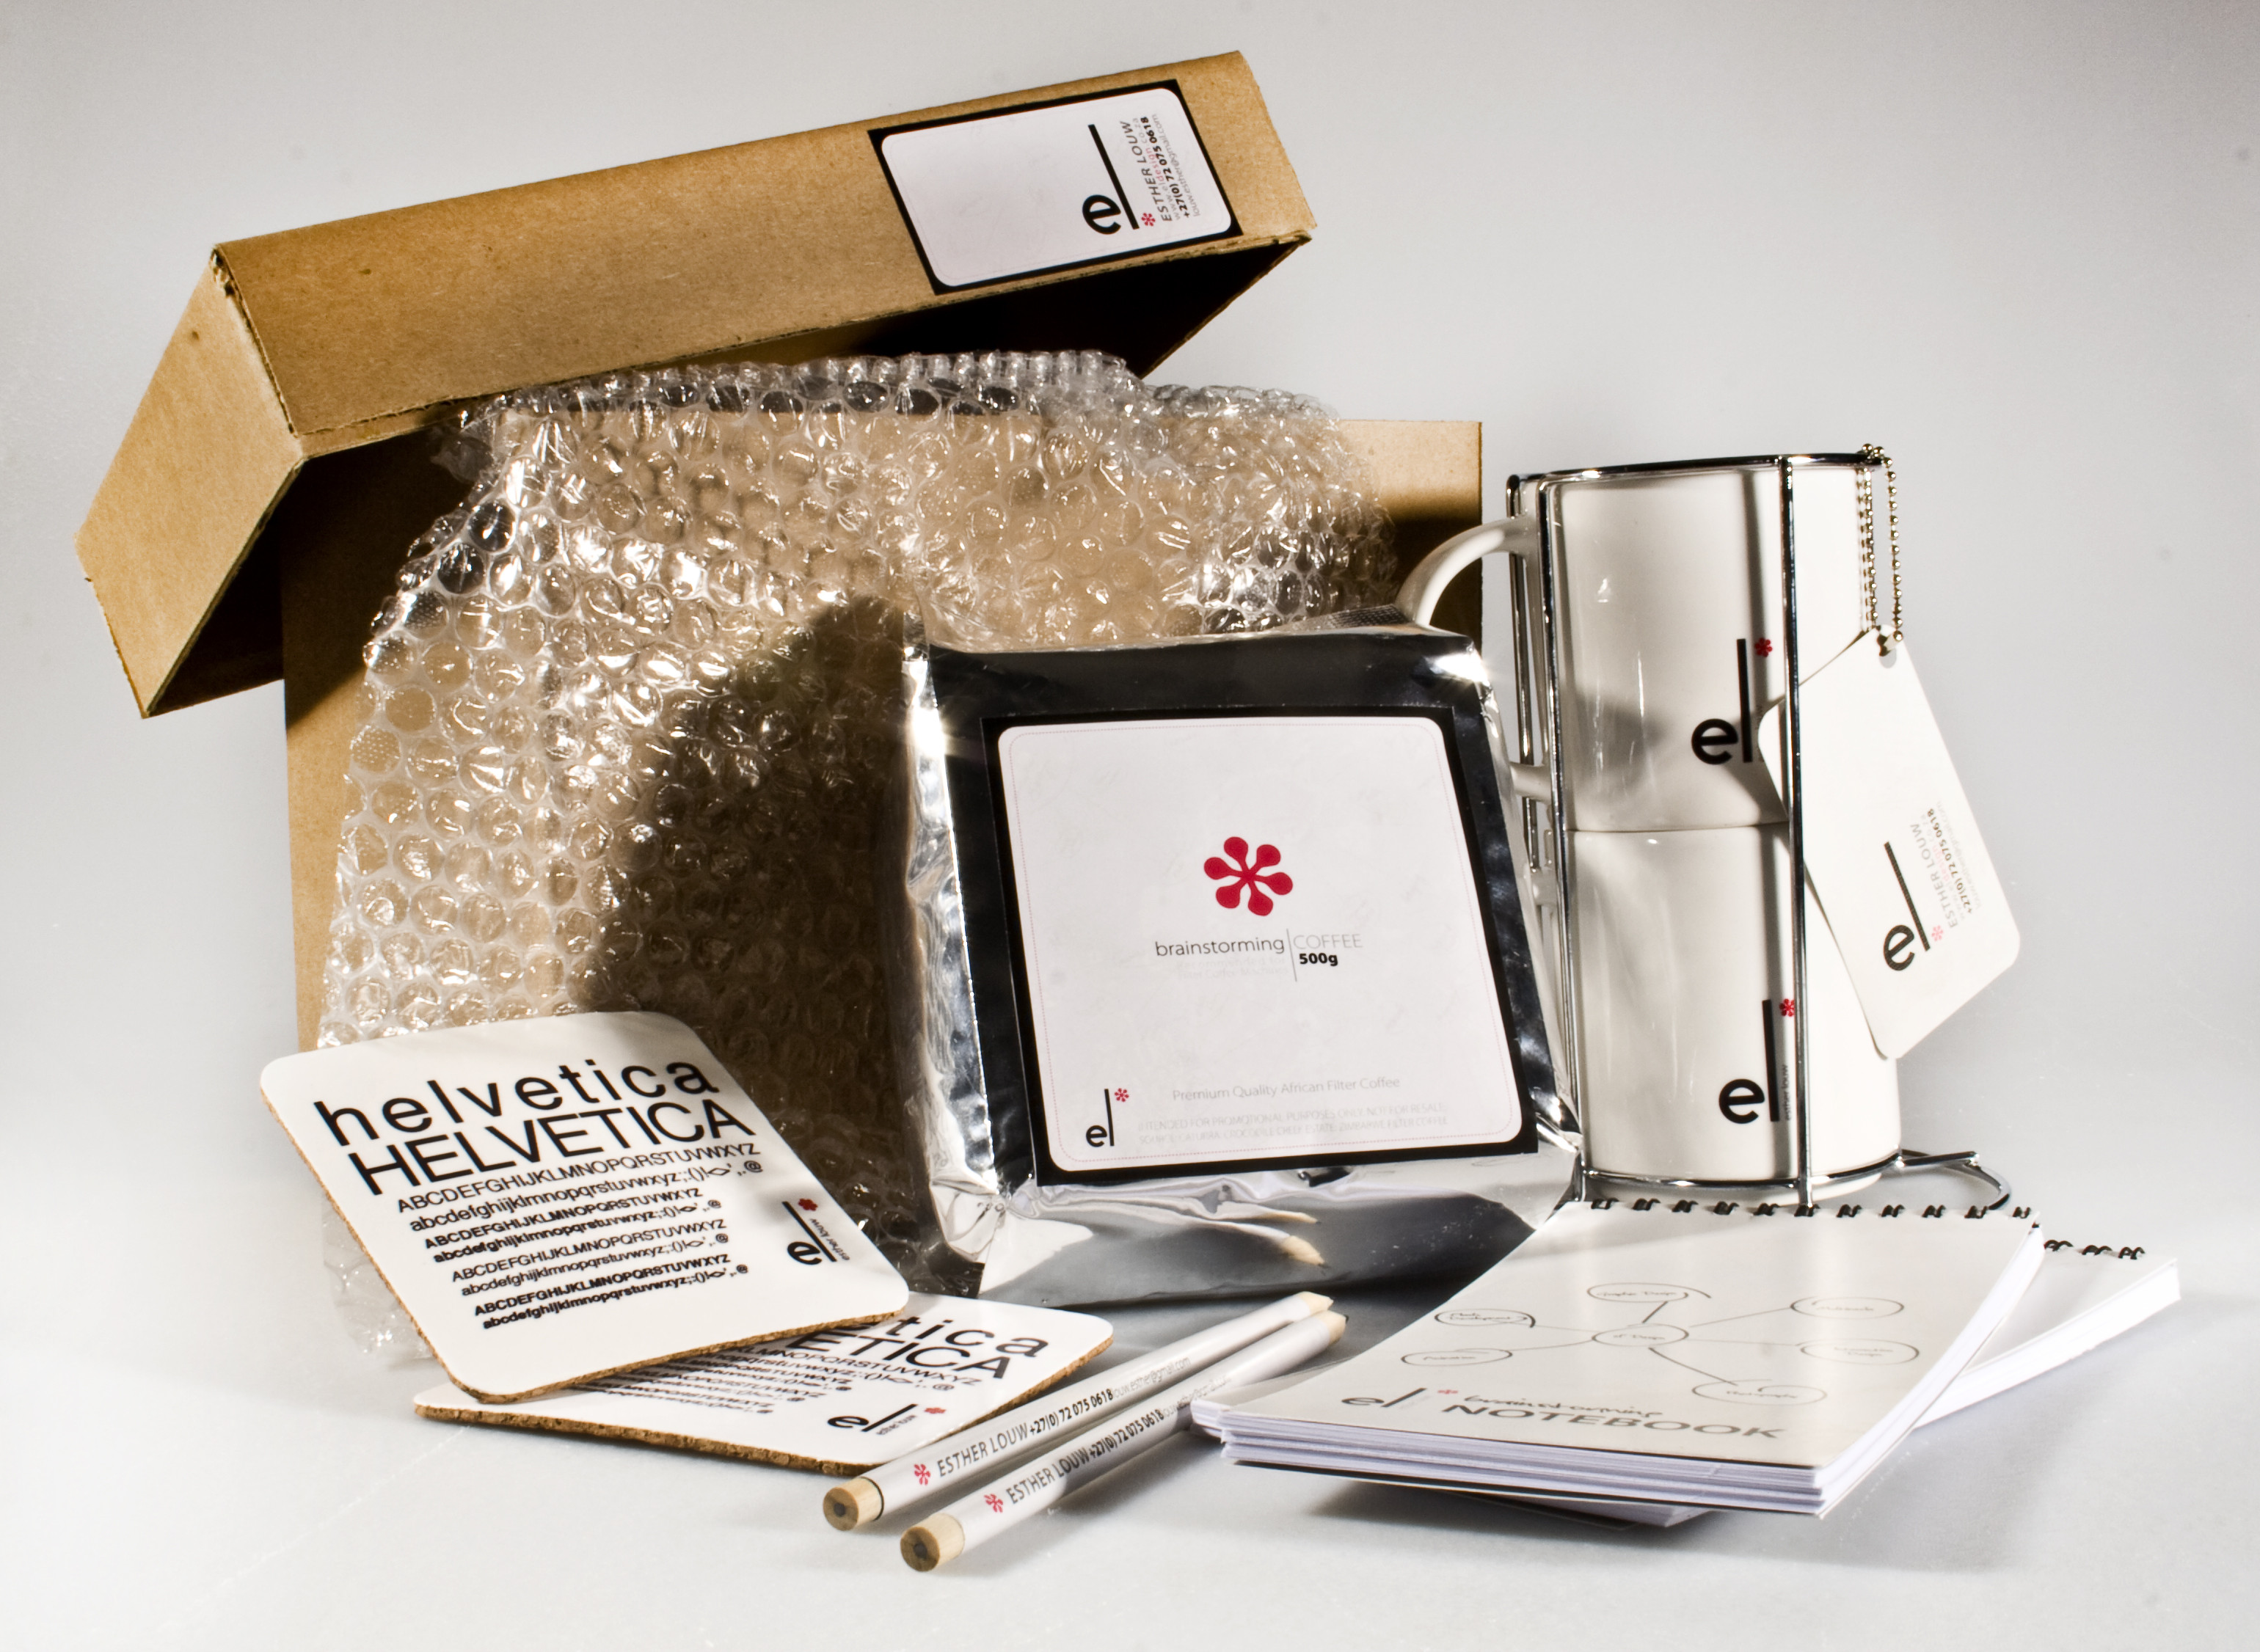 Best ideas about Corporate Gift Ideas . Save or Pin 1000 ideas about Corporate Gifts on Pinterest Now.